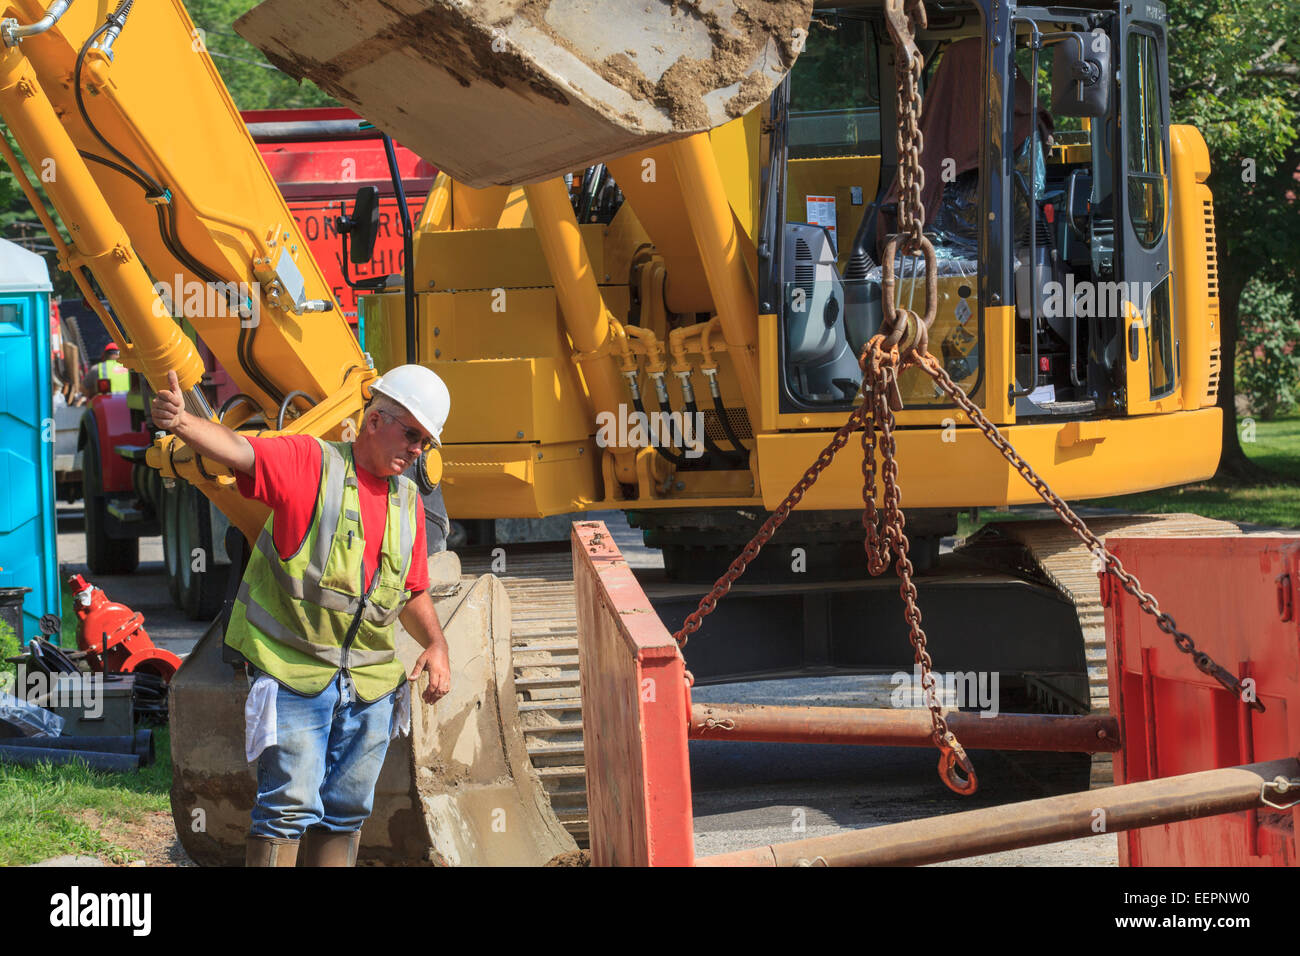 Construction foreman guiding placement of shoring into hole - Stock Image